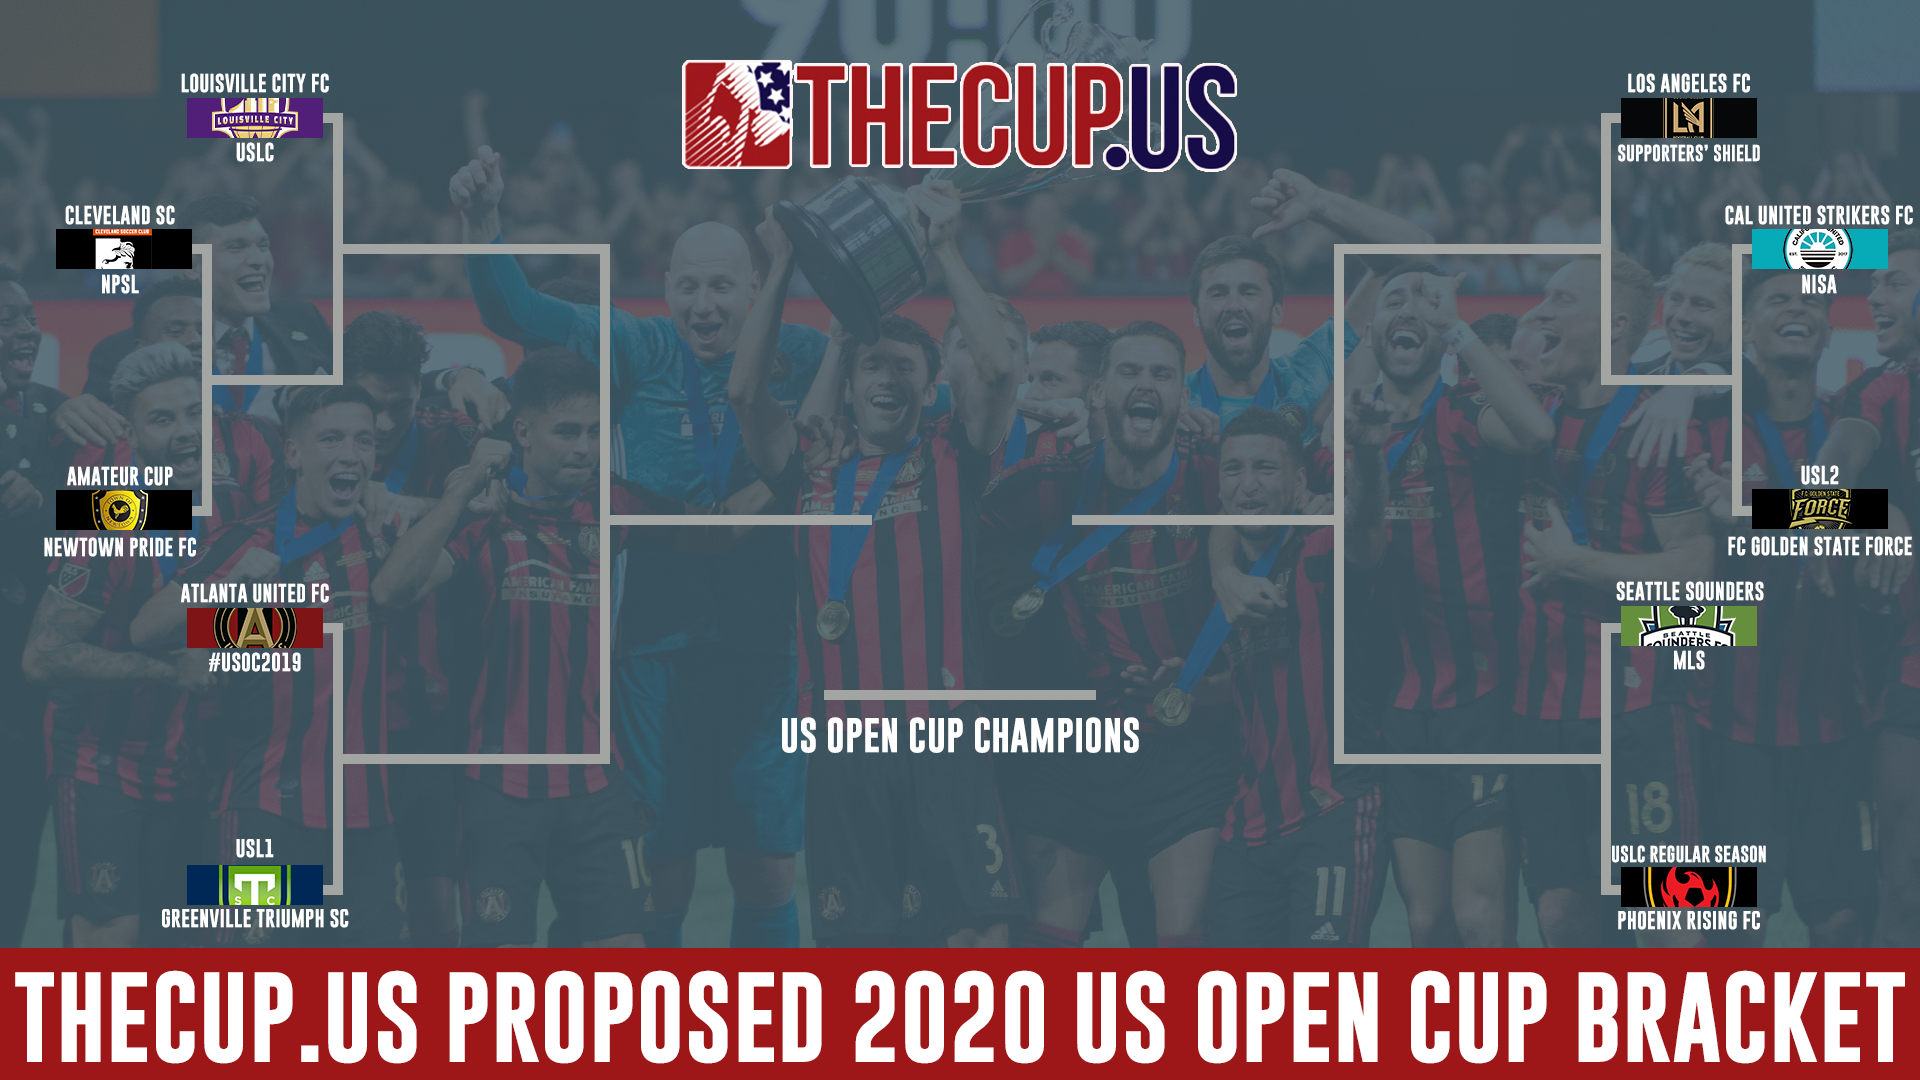 A proposed 2020 US Open Cup bracket